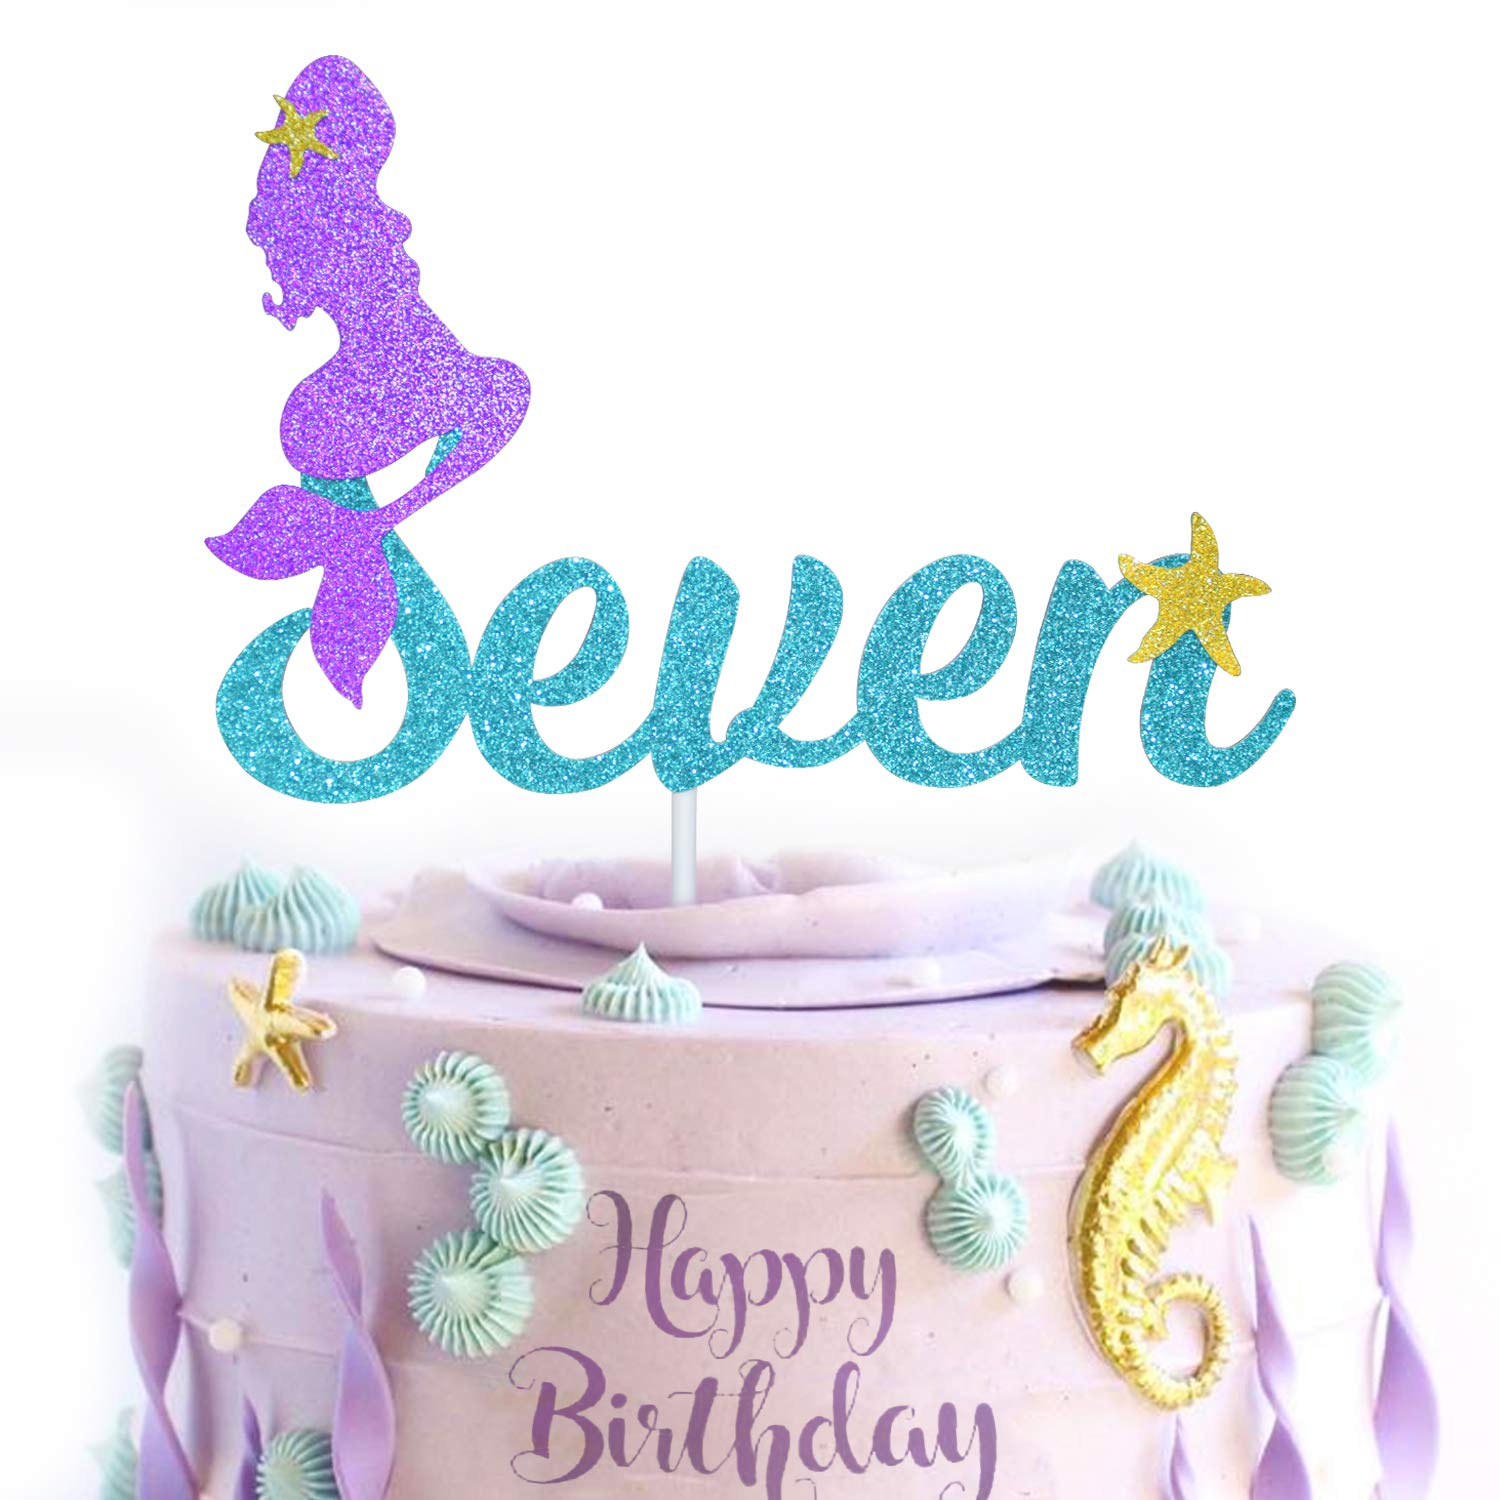 7th Mermaid Happy Birthday Cake Topper Blue Gold Glitter Under The Sea Theme Photo Decor Picks for Baby Shower and Wedding Party Seven Years Old Decorations Supplies